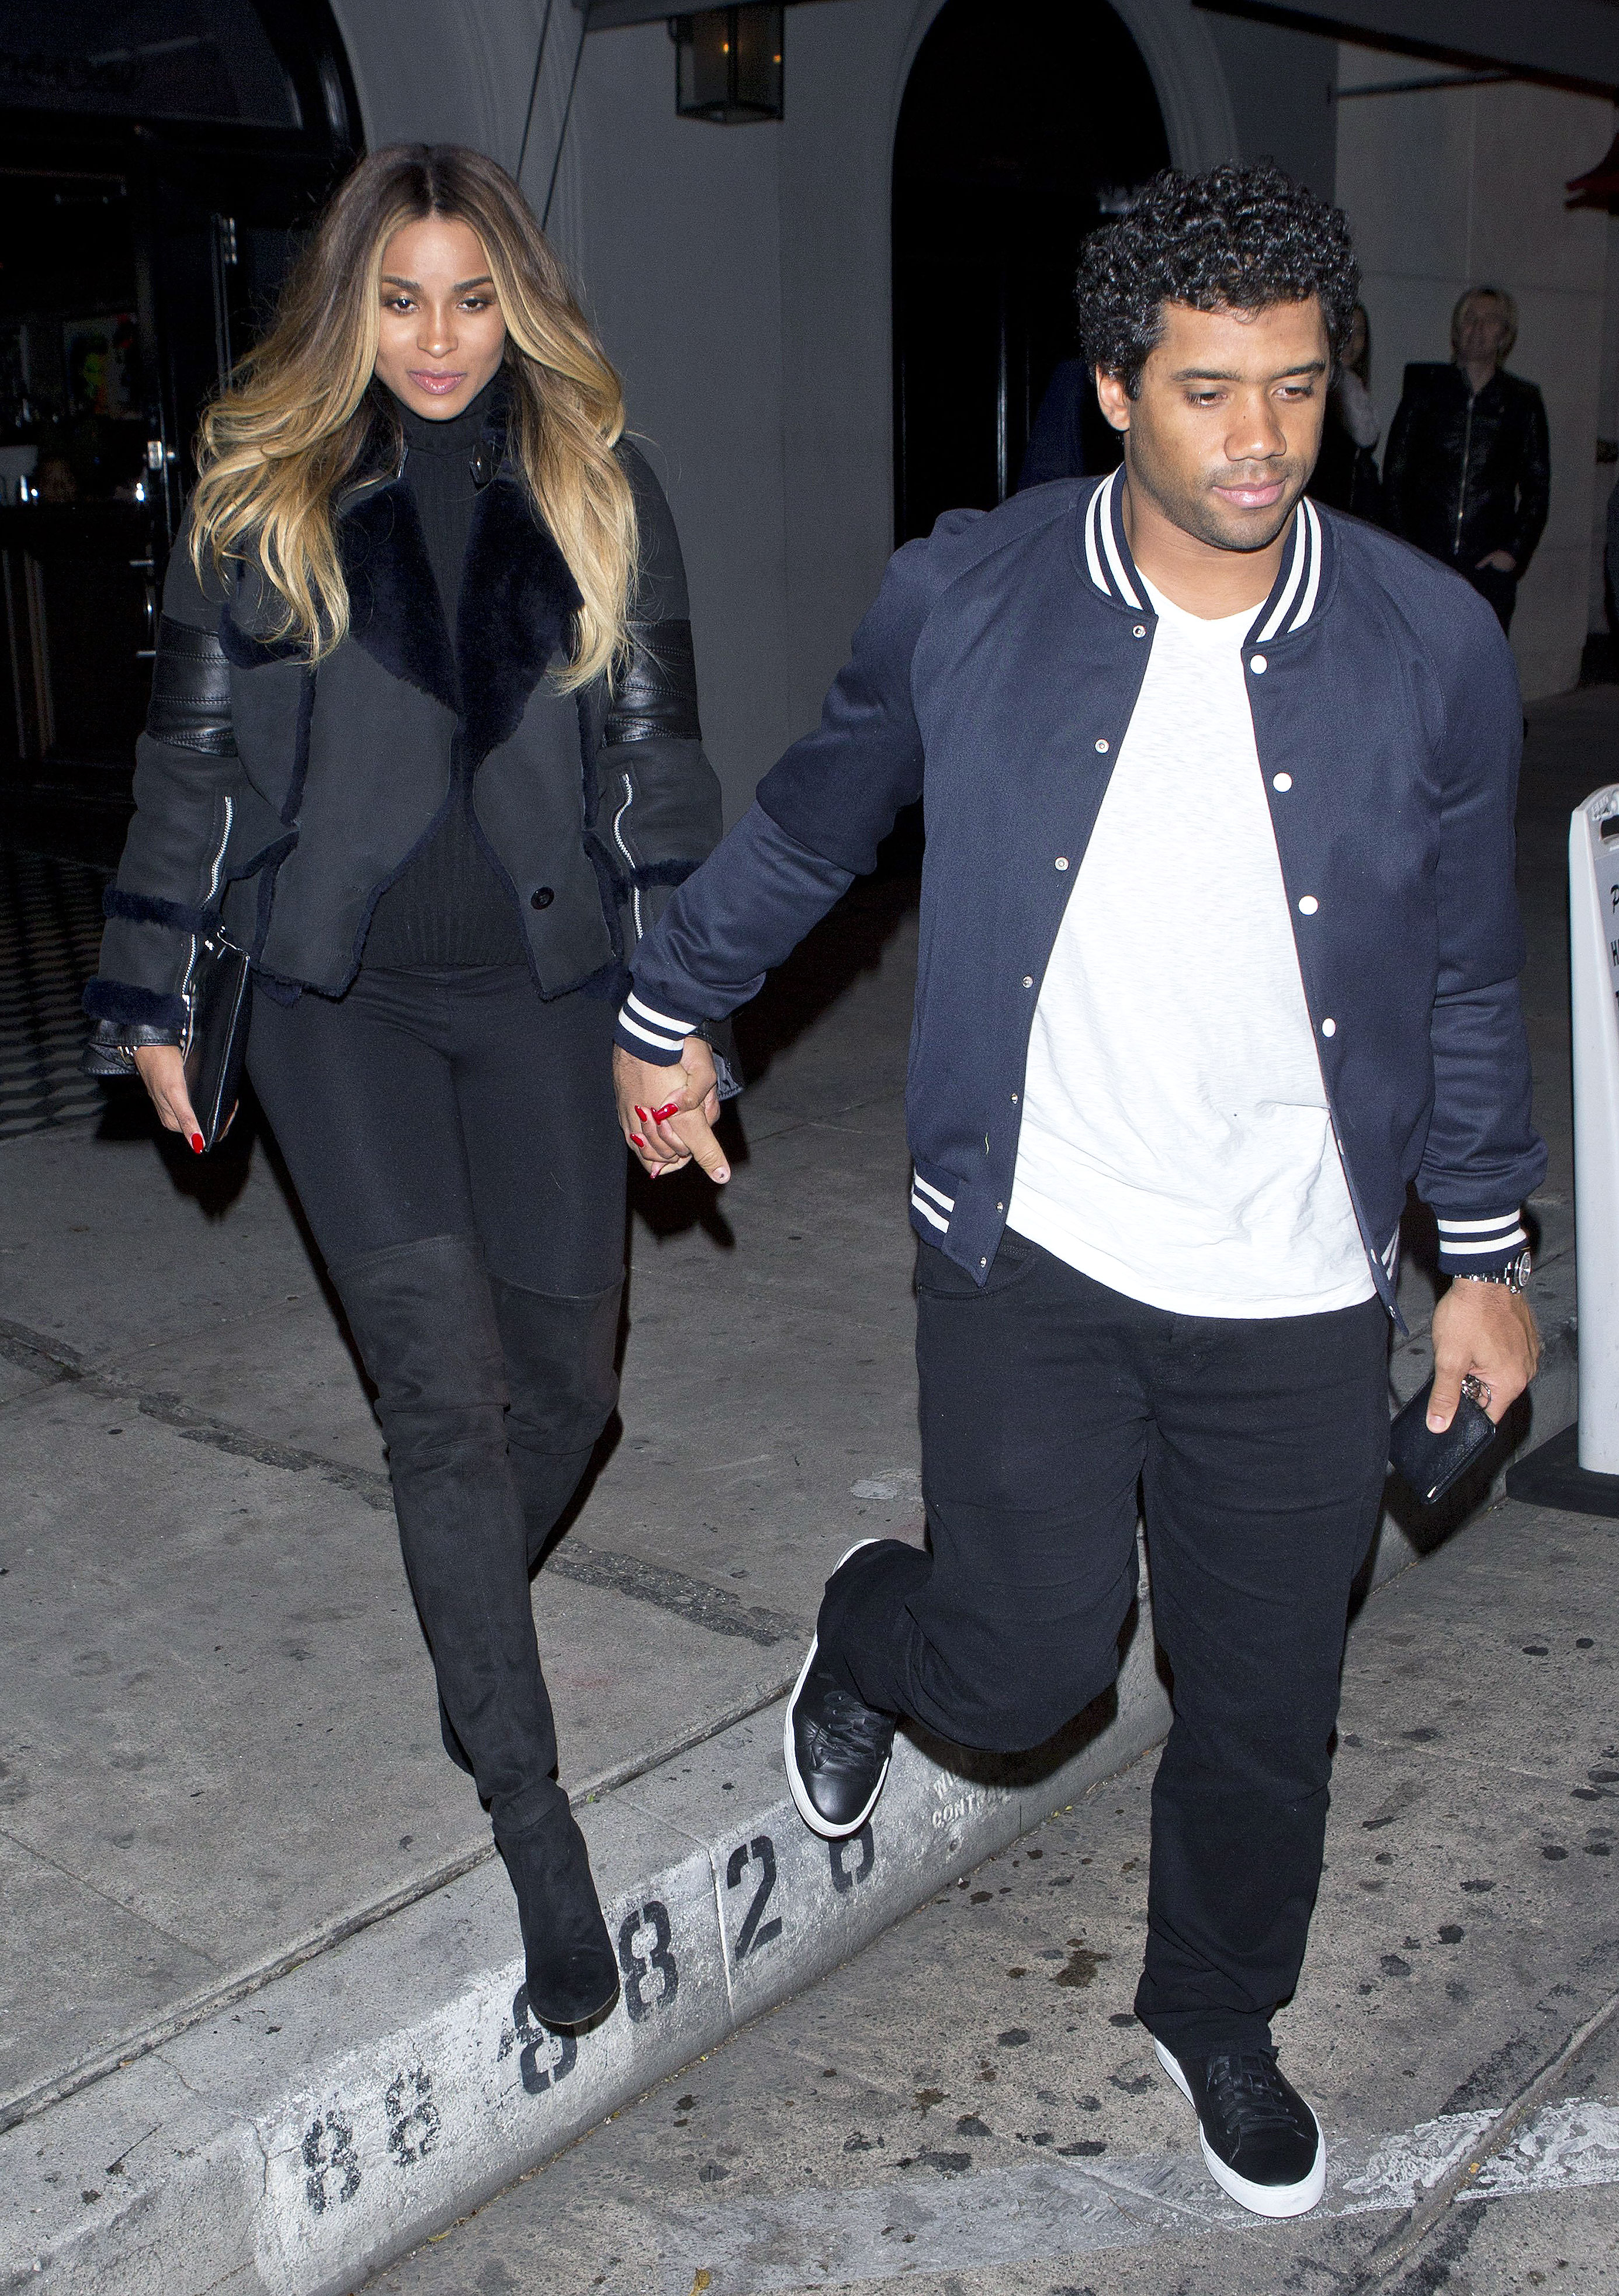 Pregnant Ciara Unveils Baby Bump On Date With Russell